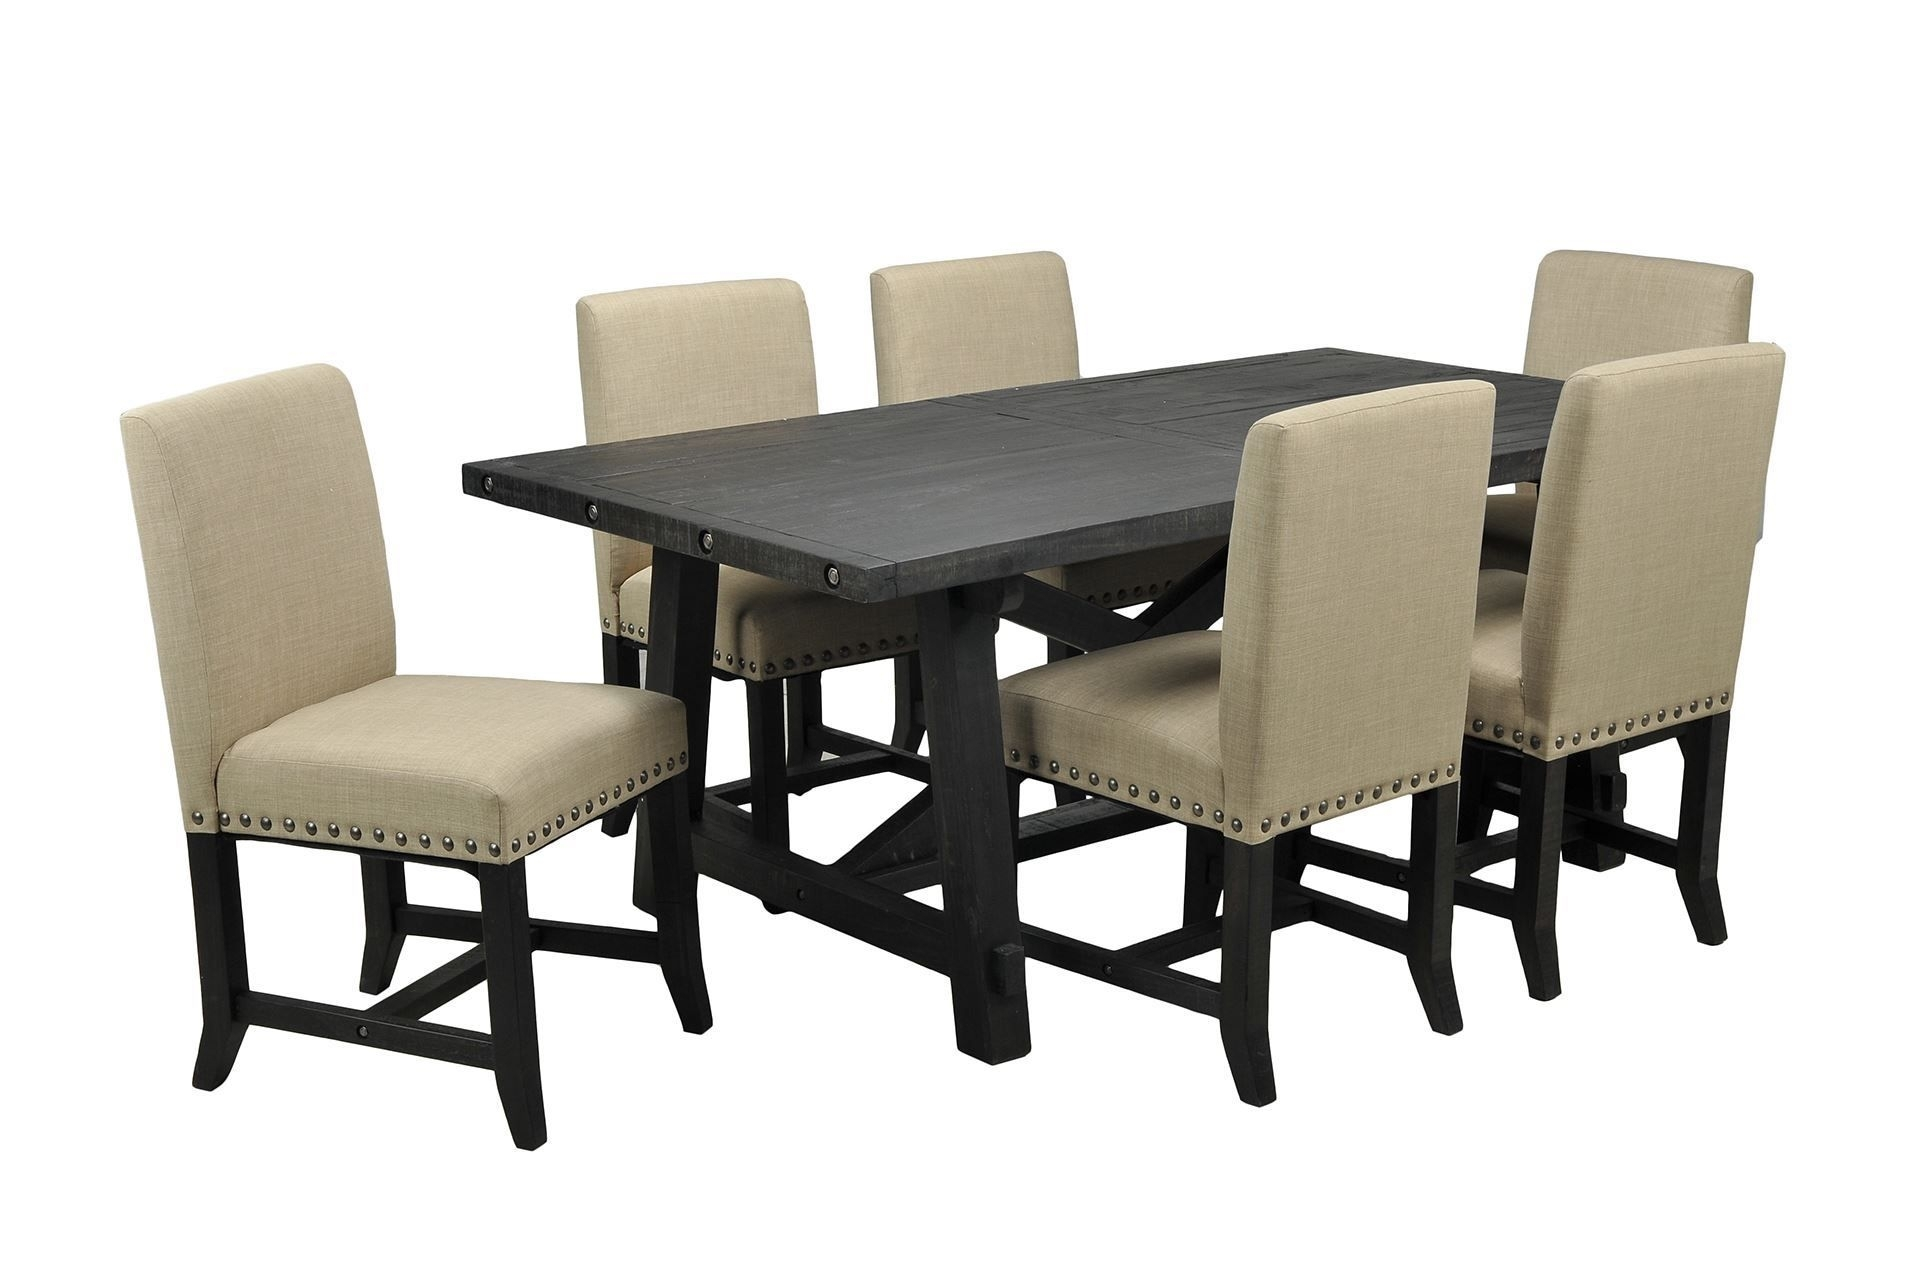 Jaxon 7 Piece Rectangle Dining Set W/upholstered Chairs, Café With Regard To Famous Jaxon Grey Upholstered Side Chairs (#6 of 20)